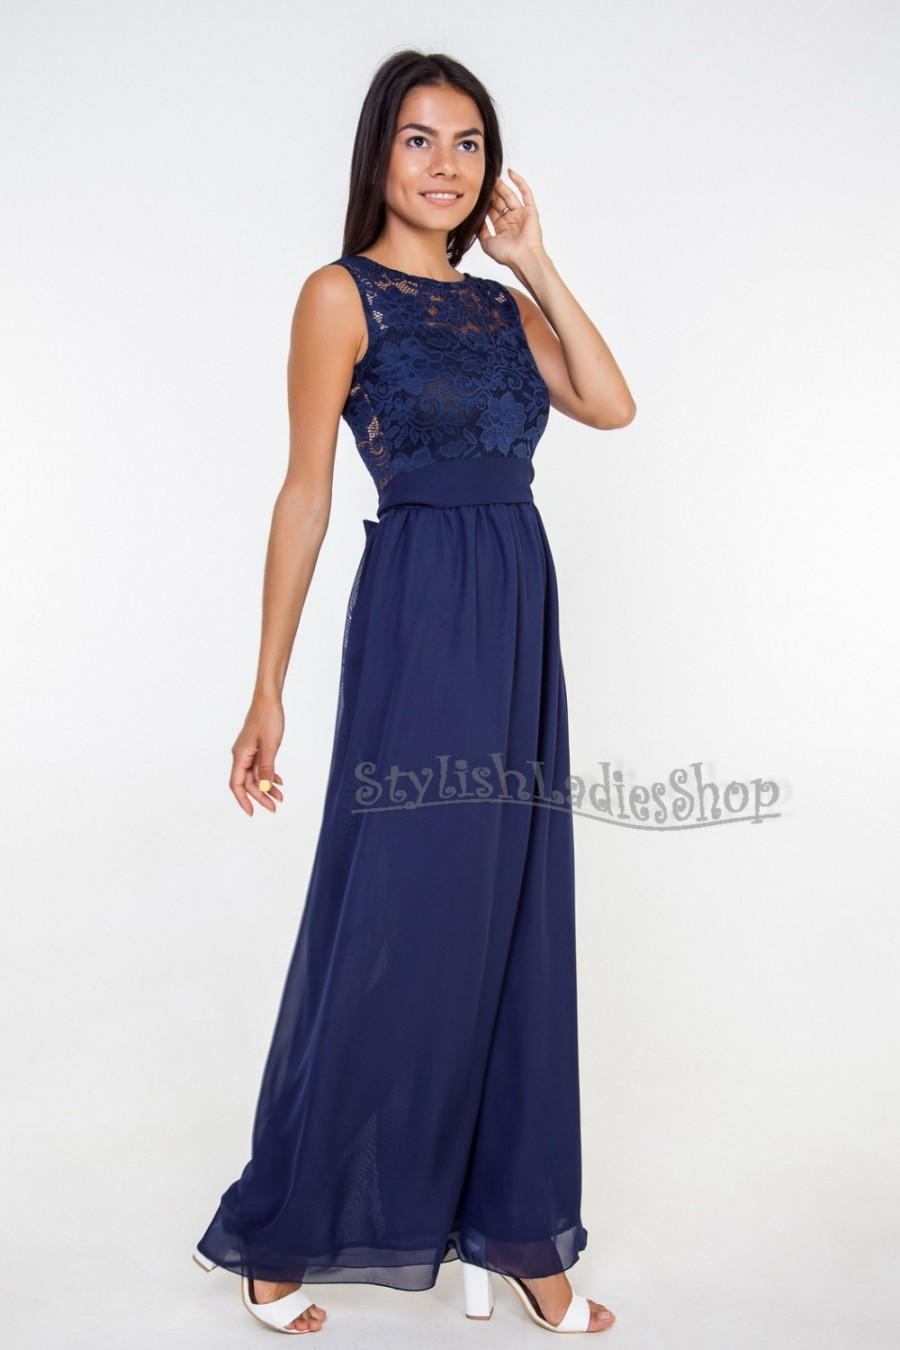 Bridesmaid dress navy blue long bridesmaid navy lace bridesmaid bridesmaid dress navy blue long bridesmaid navy lace bridesmaid dark blue dress bridesmaid lace bridesmaid dress navy bridesmaid chiffon ombrellifo Choice Image